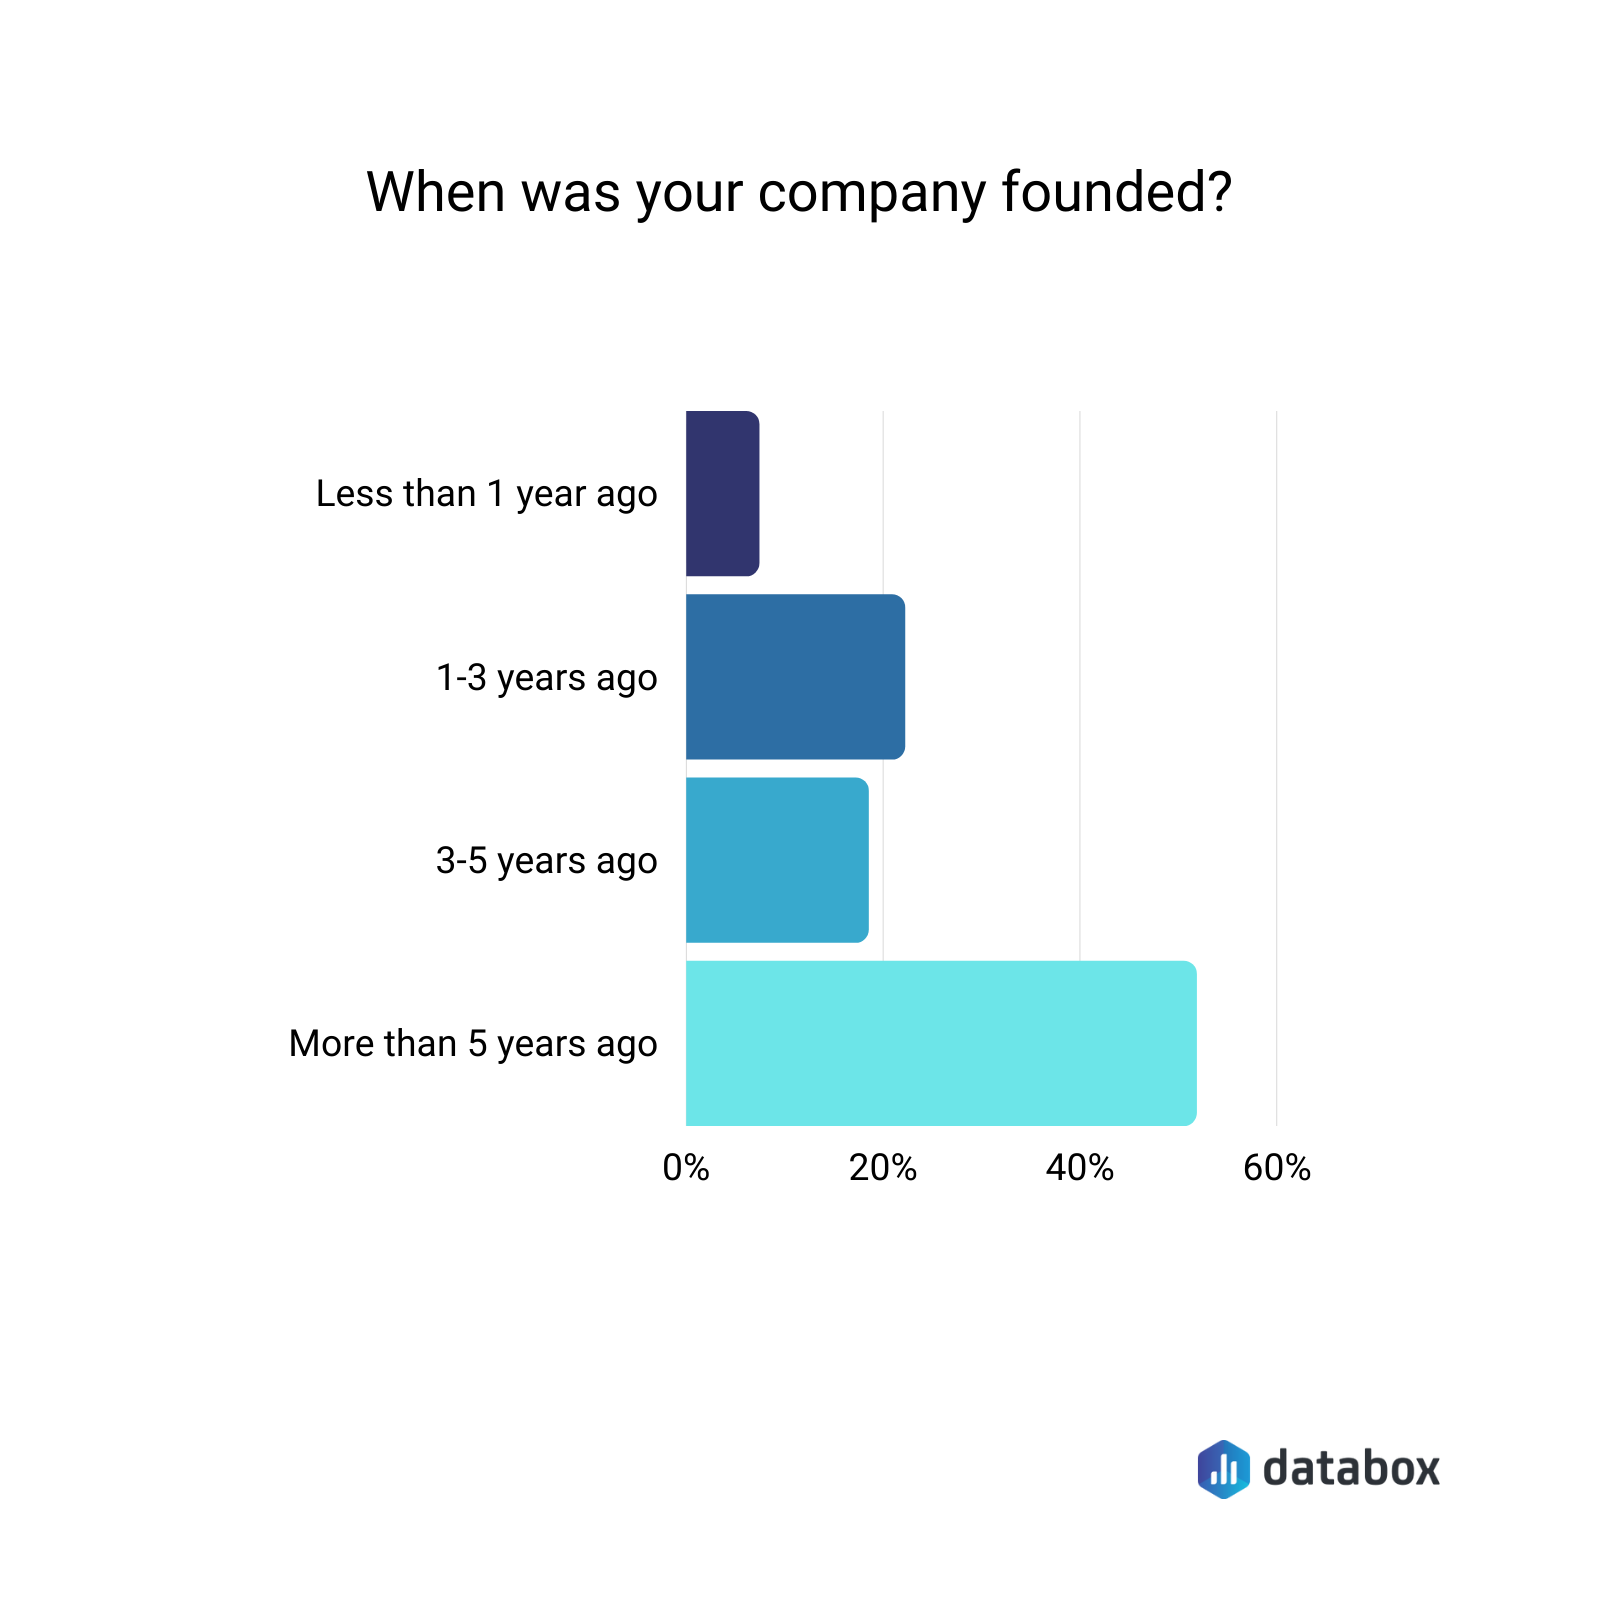 When was your company founded?